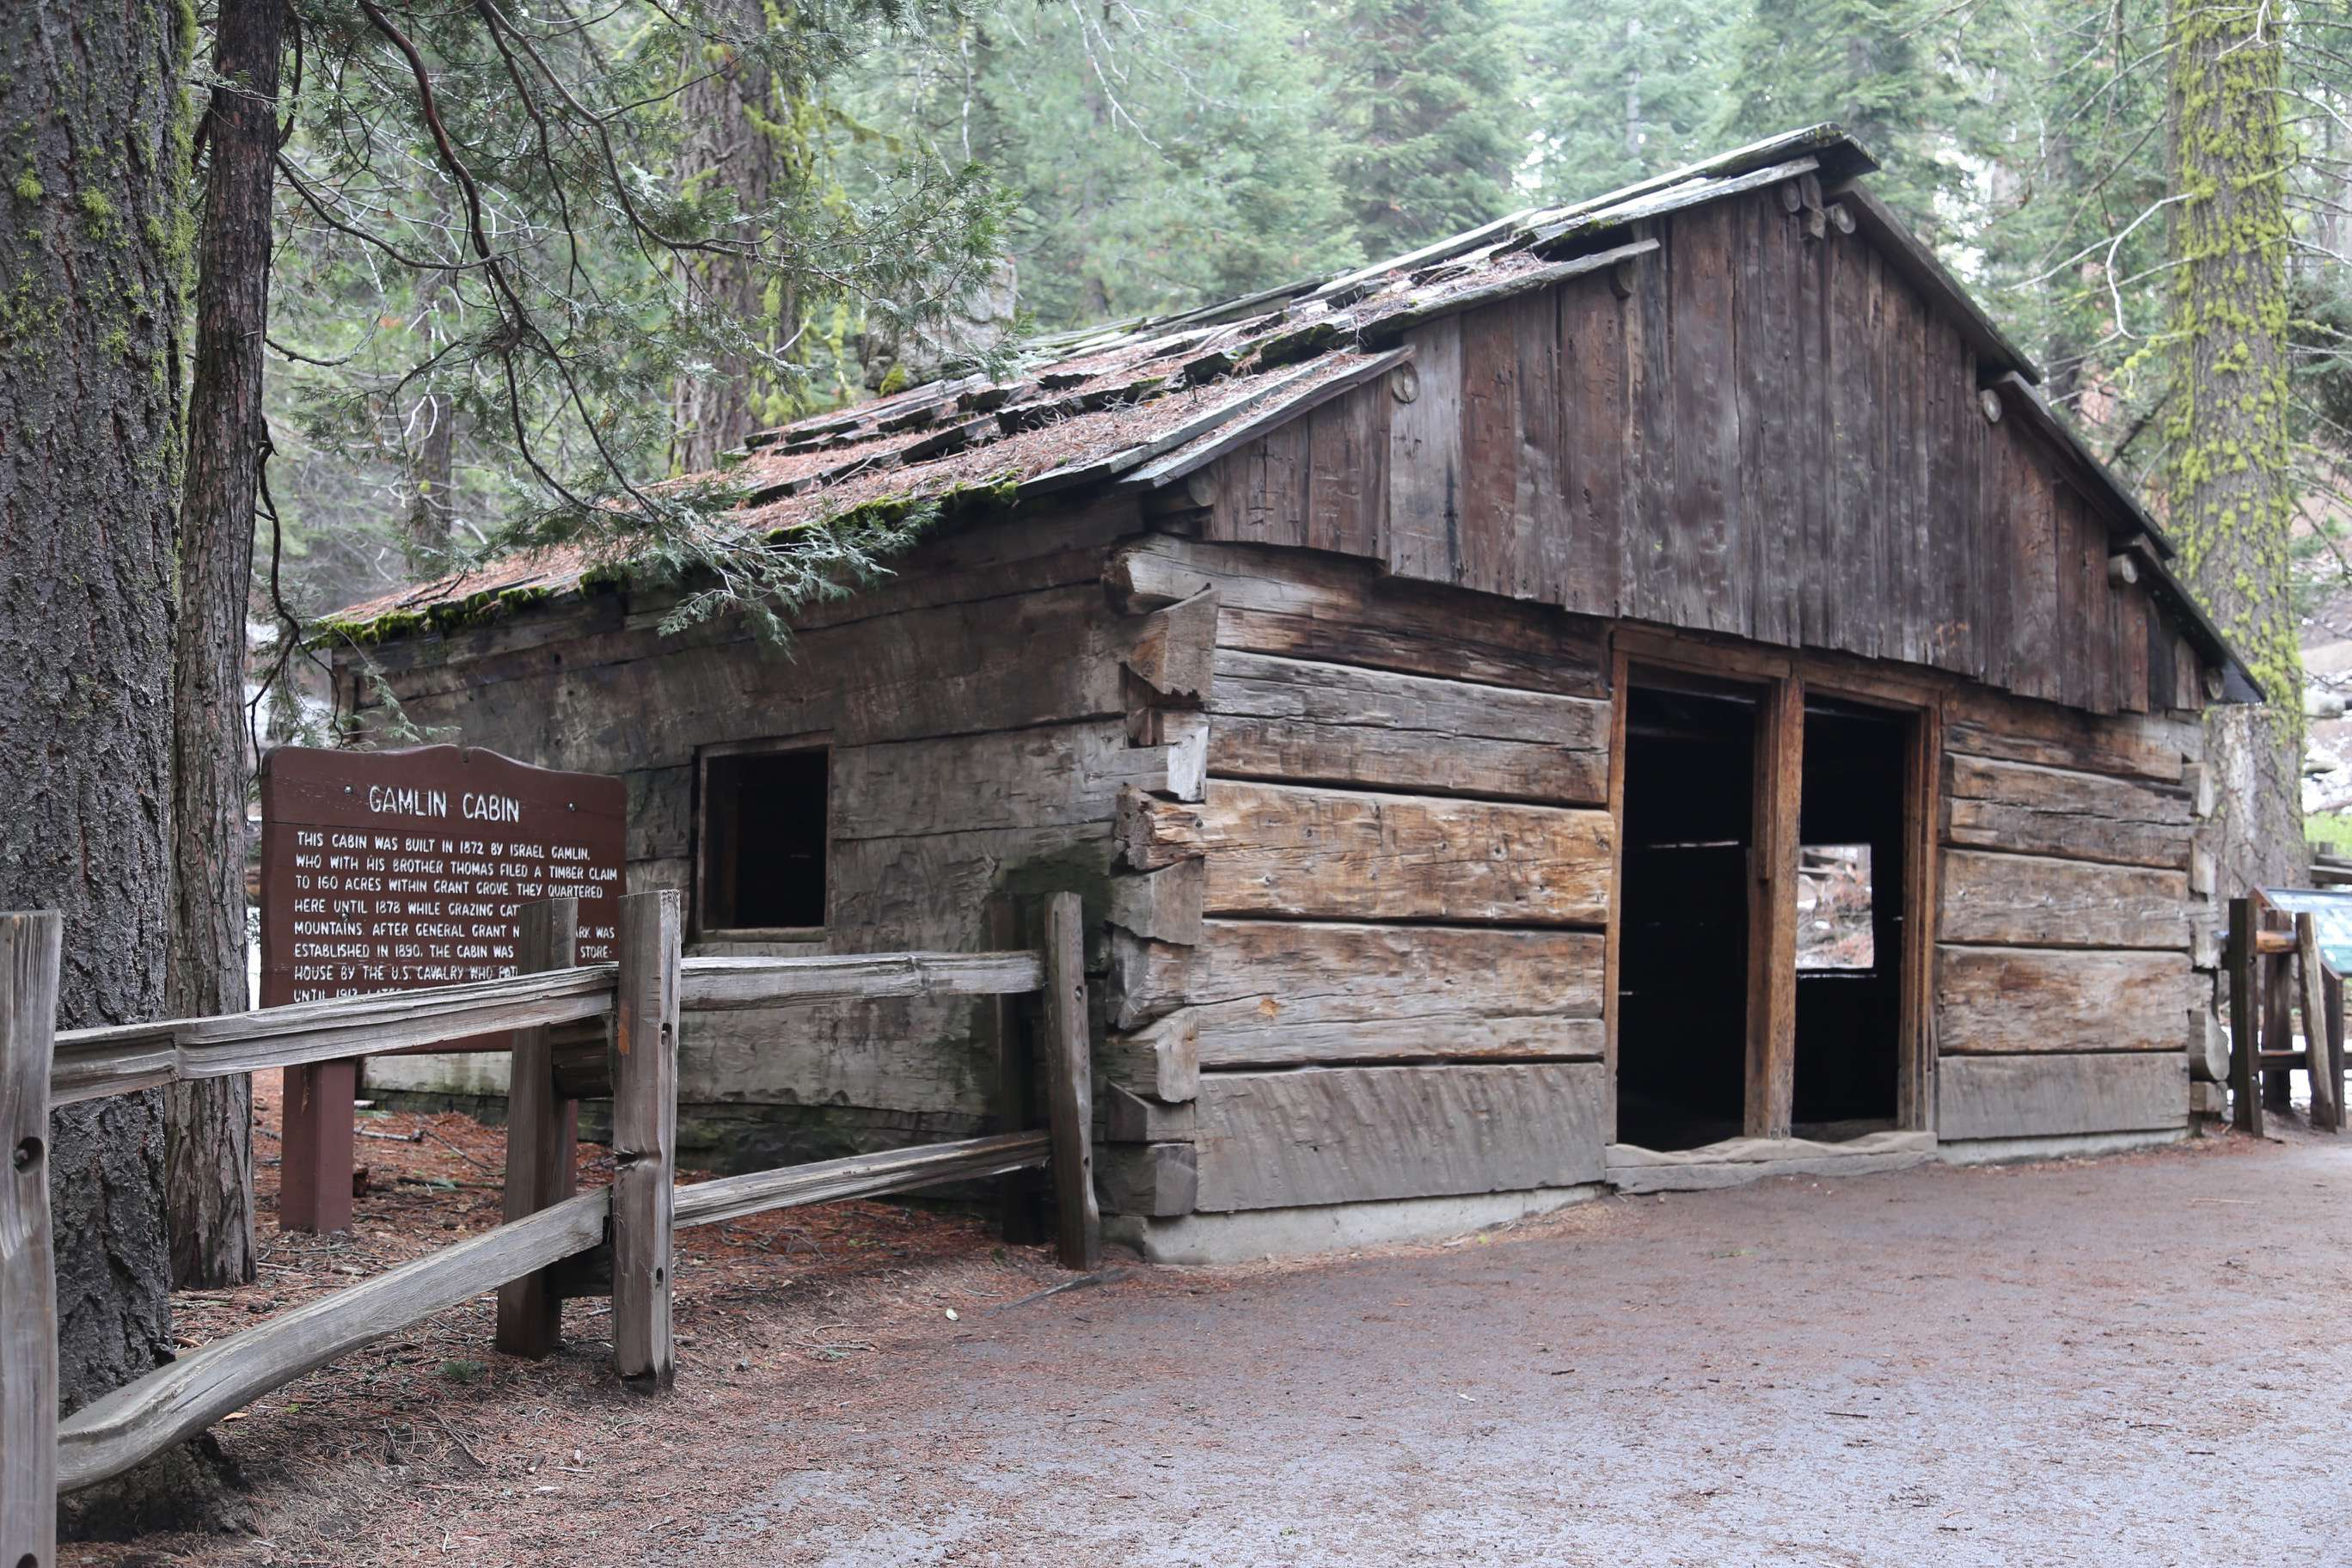 Gamlin built this cabin in KCNP and he was another settler trying to make a go of it in the fragile mountain country. Dreams were big but conditions were harsh.